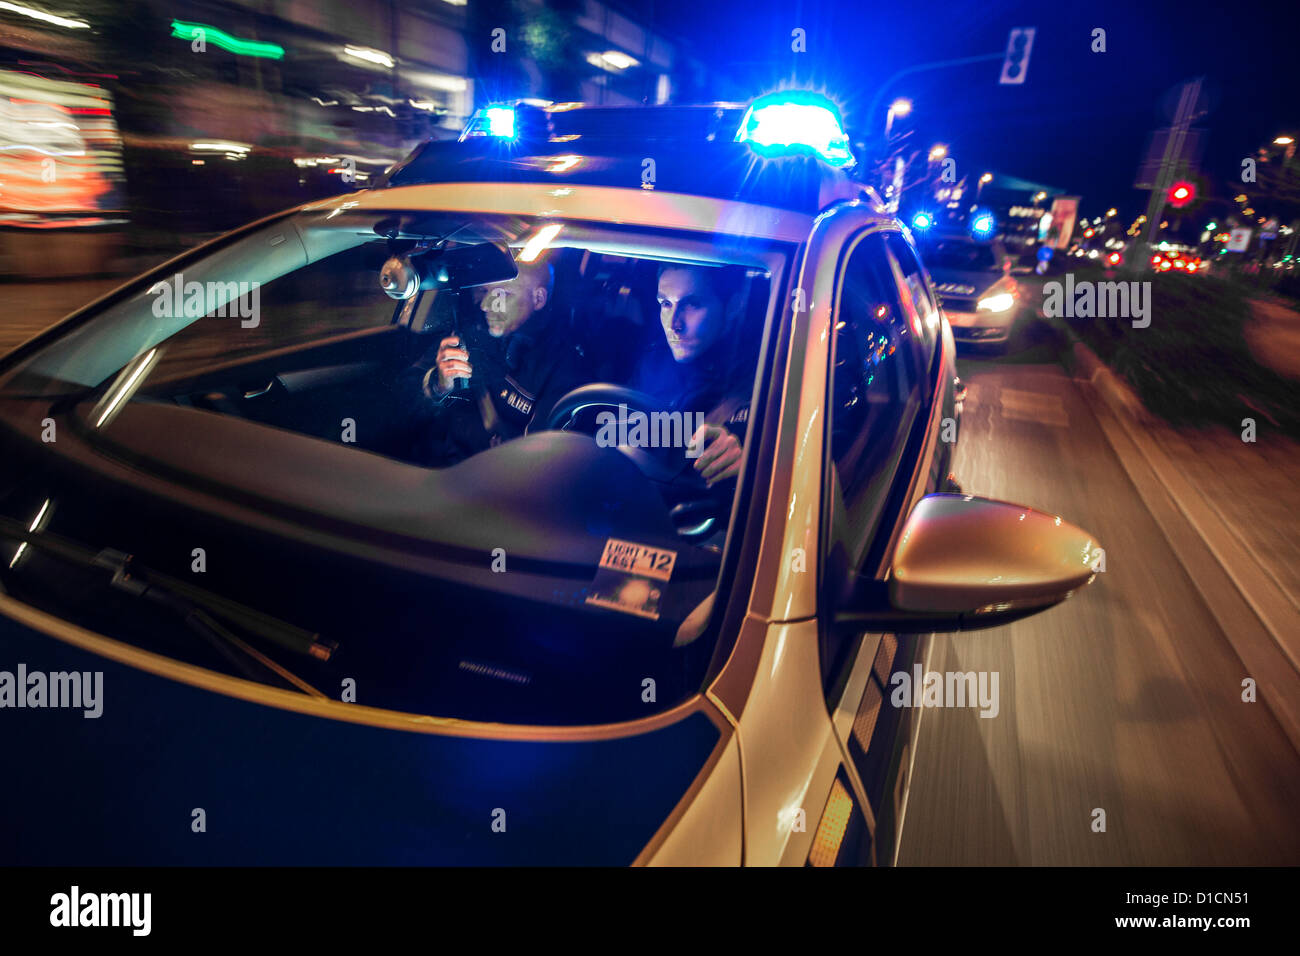 Police patrol car with blue flashing lights, signal horn, driving fast during an emergency mission. - Stock Image